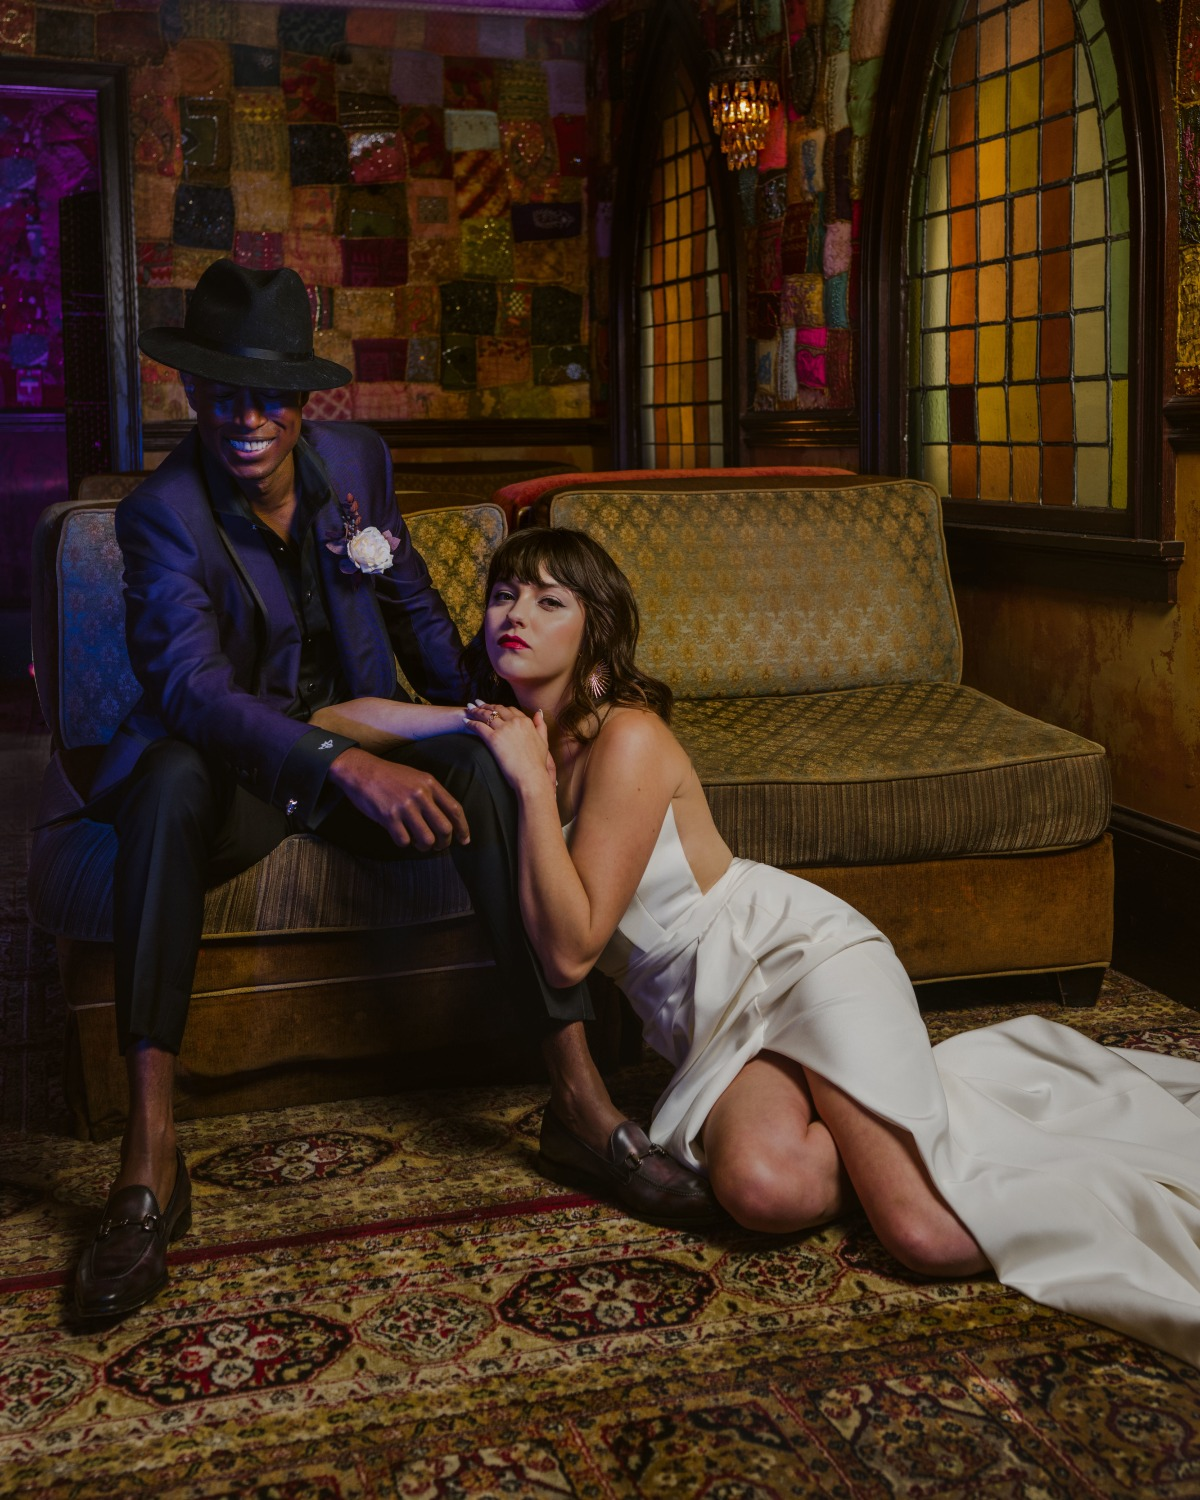 Fashion and Music Take Center Stage In This Rock and Roll Inspired Shoot